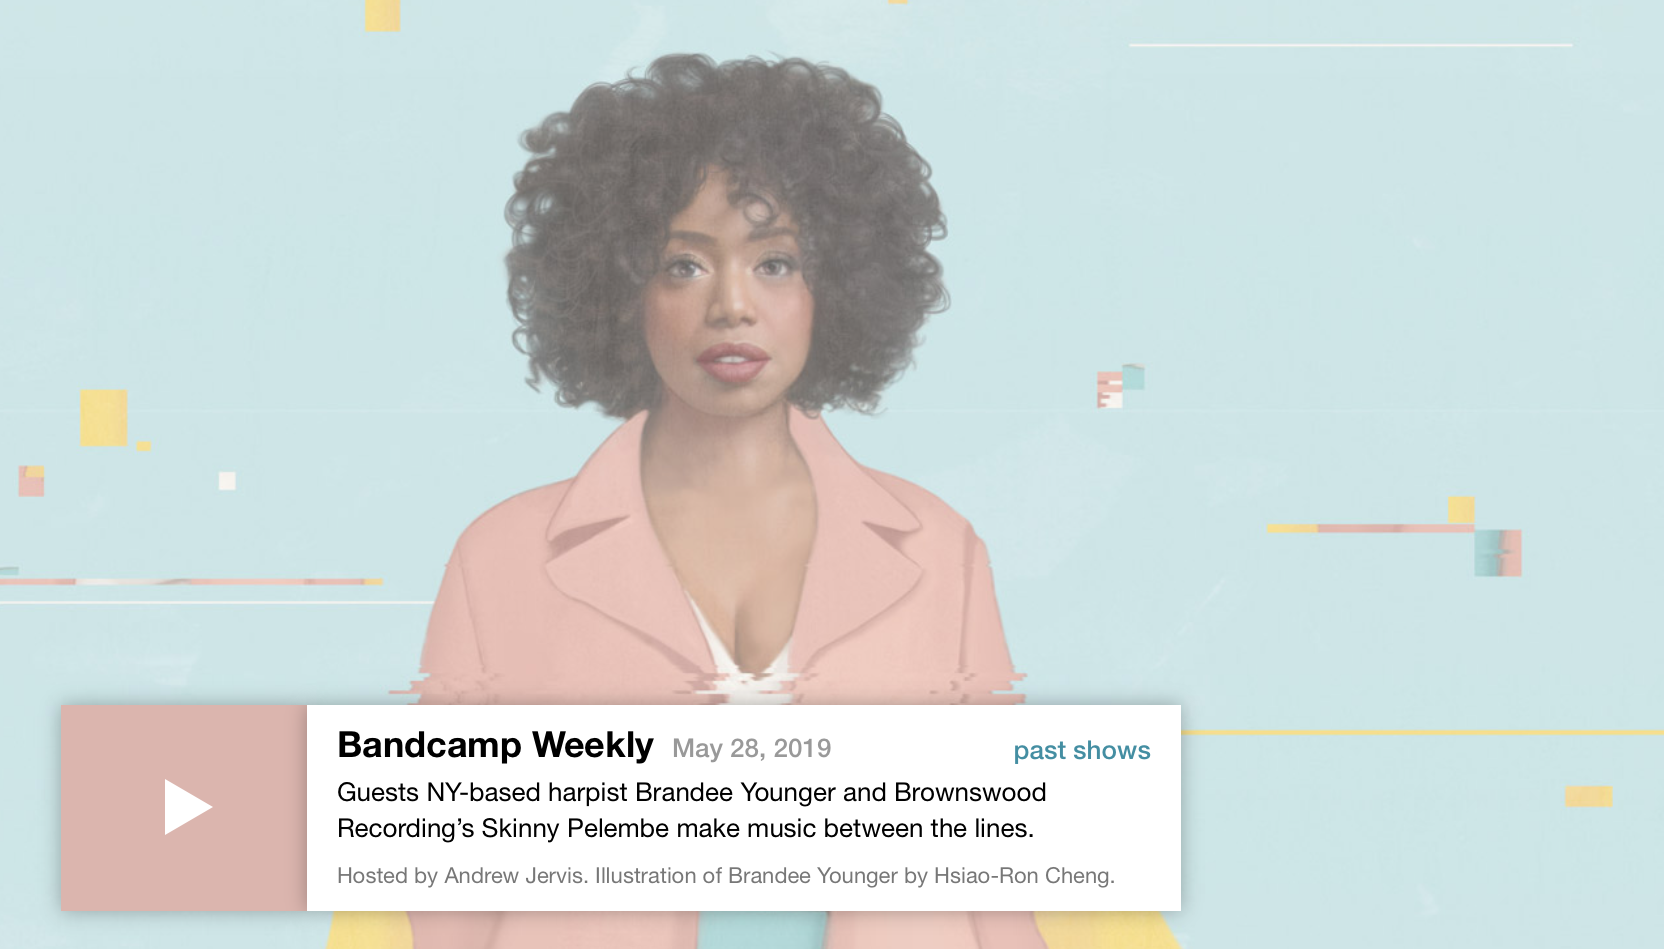 Bandcamp Weekly Feature (2019)